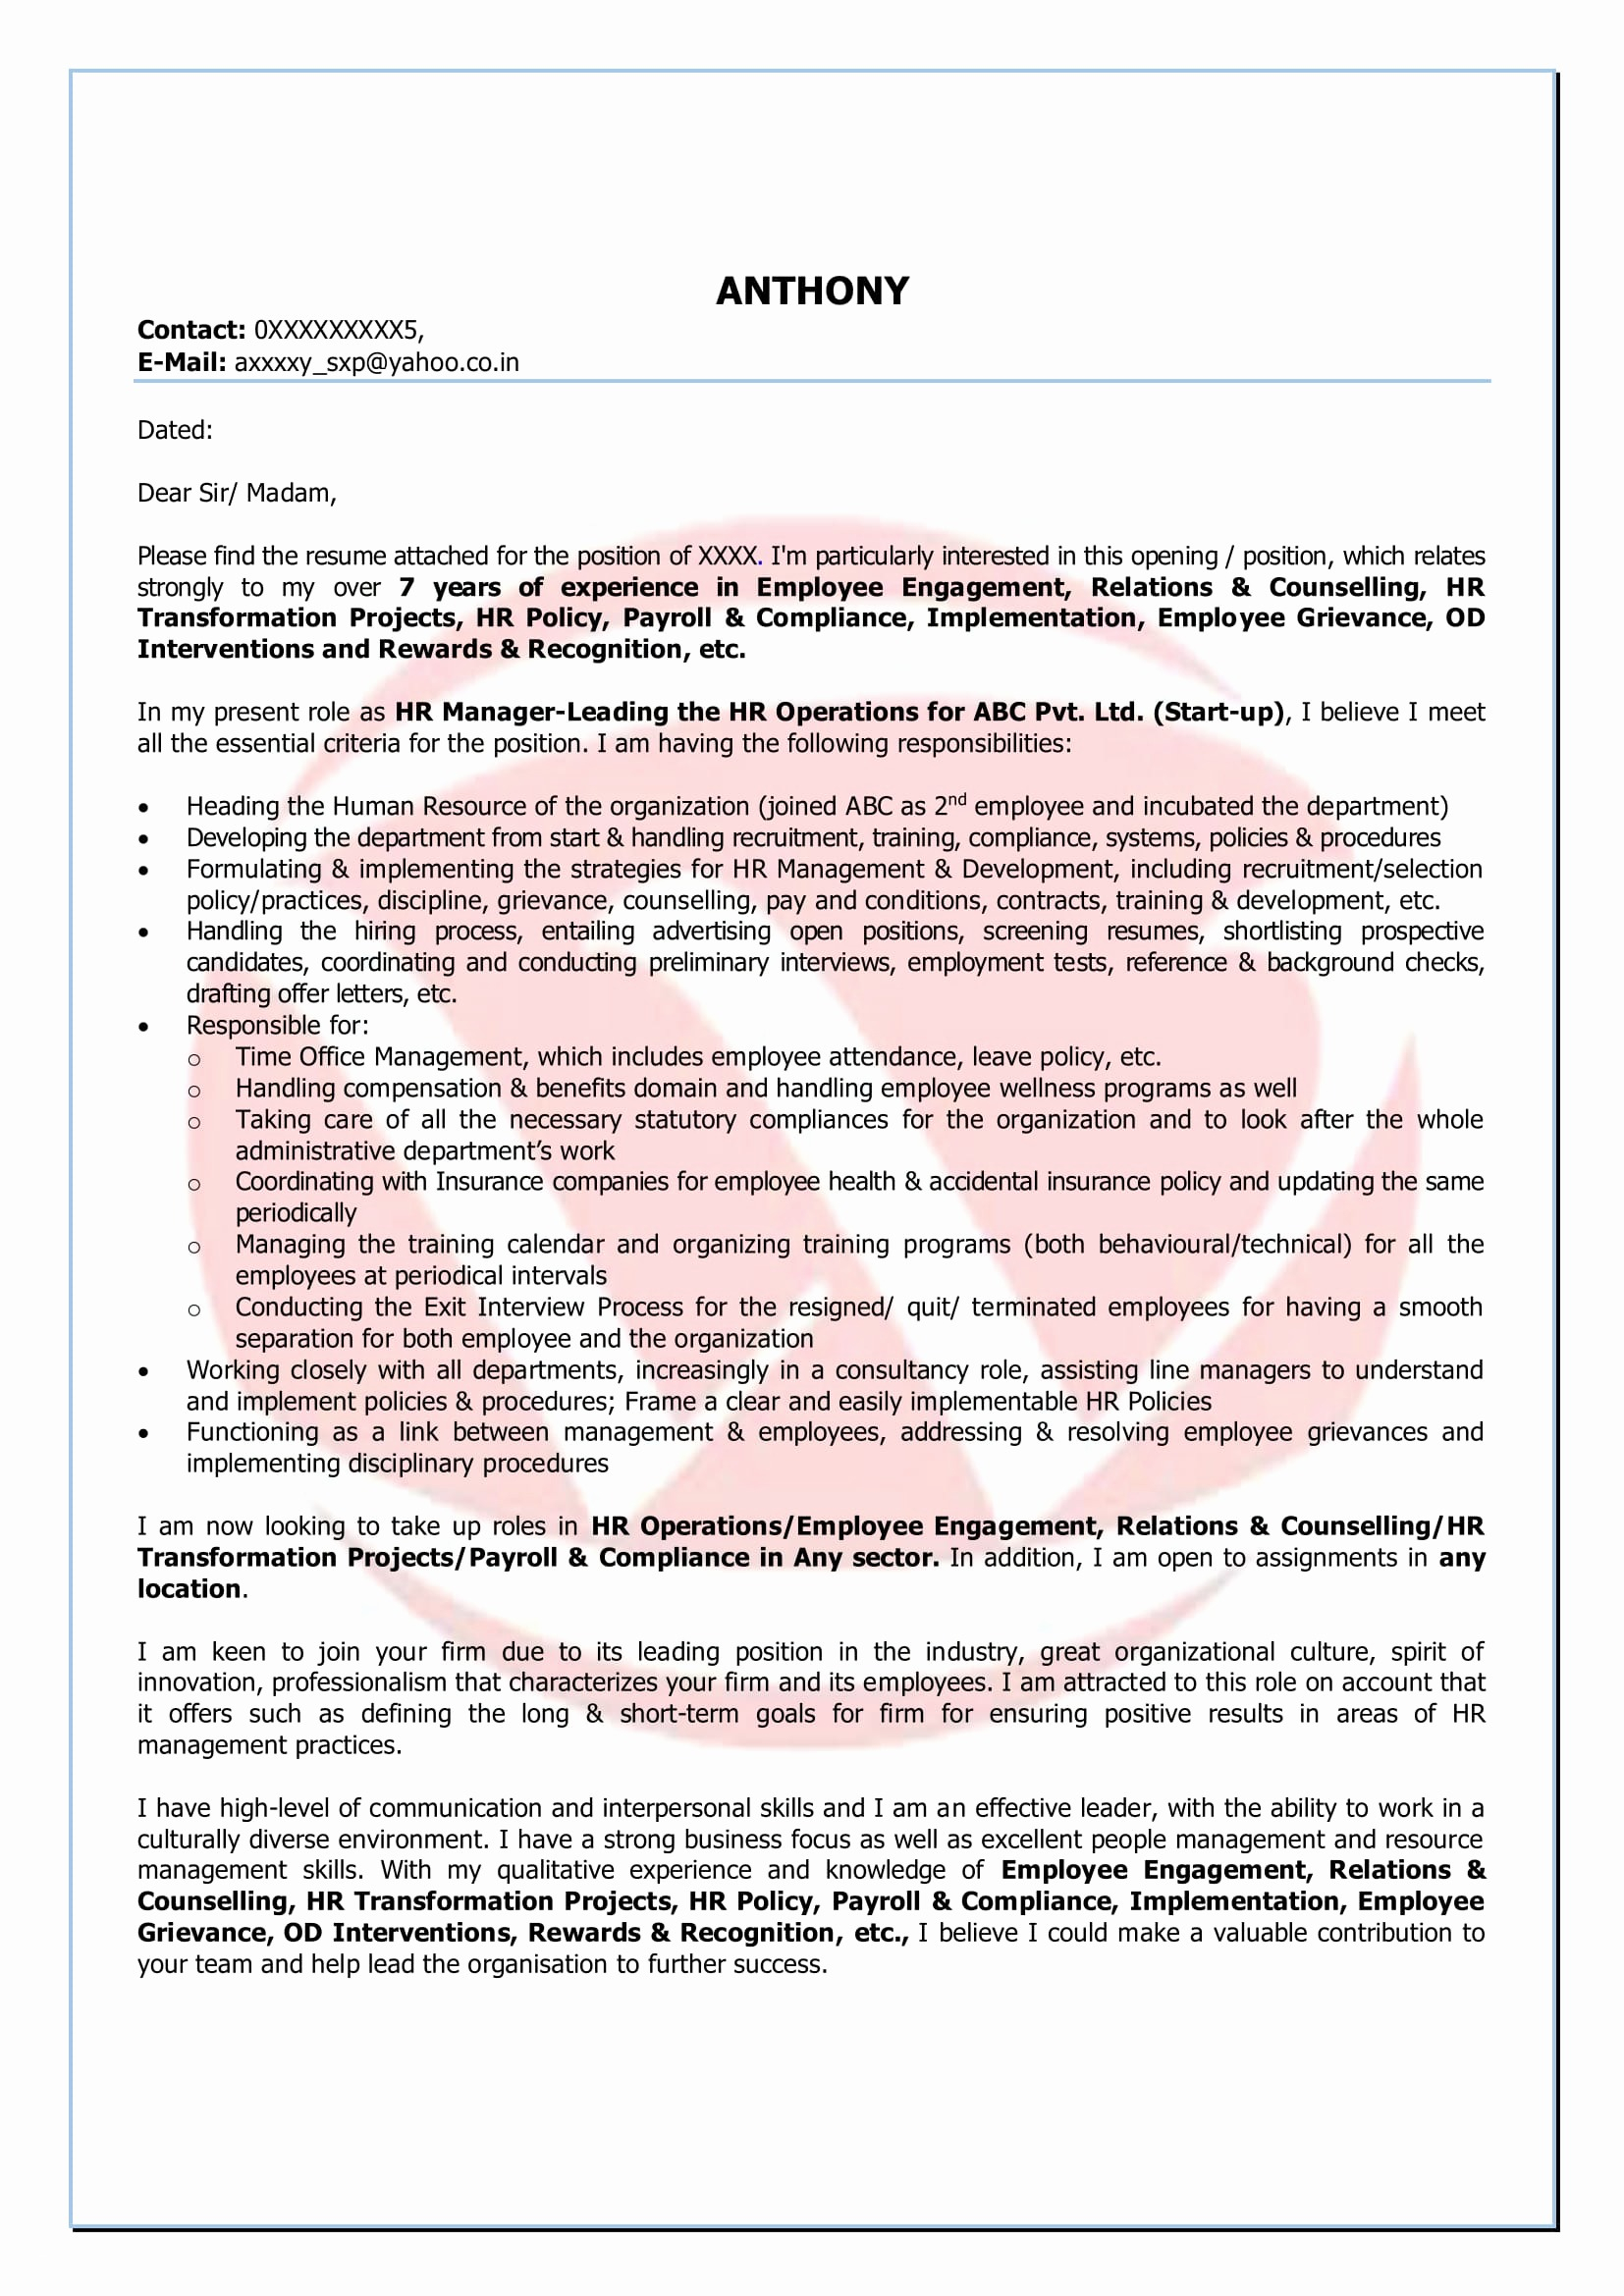 reliance letter due diligence template example-Letter Templates beautiful hr due diligence checklist template 9-h